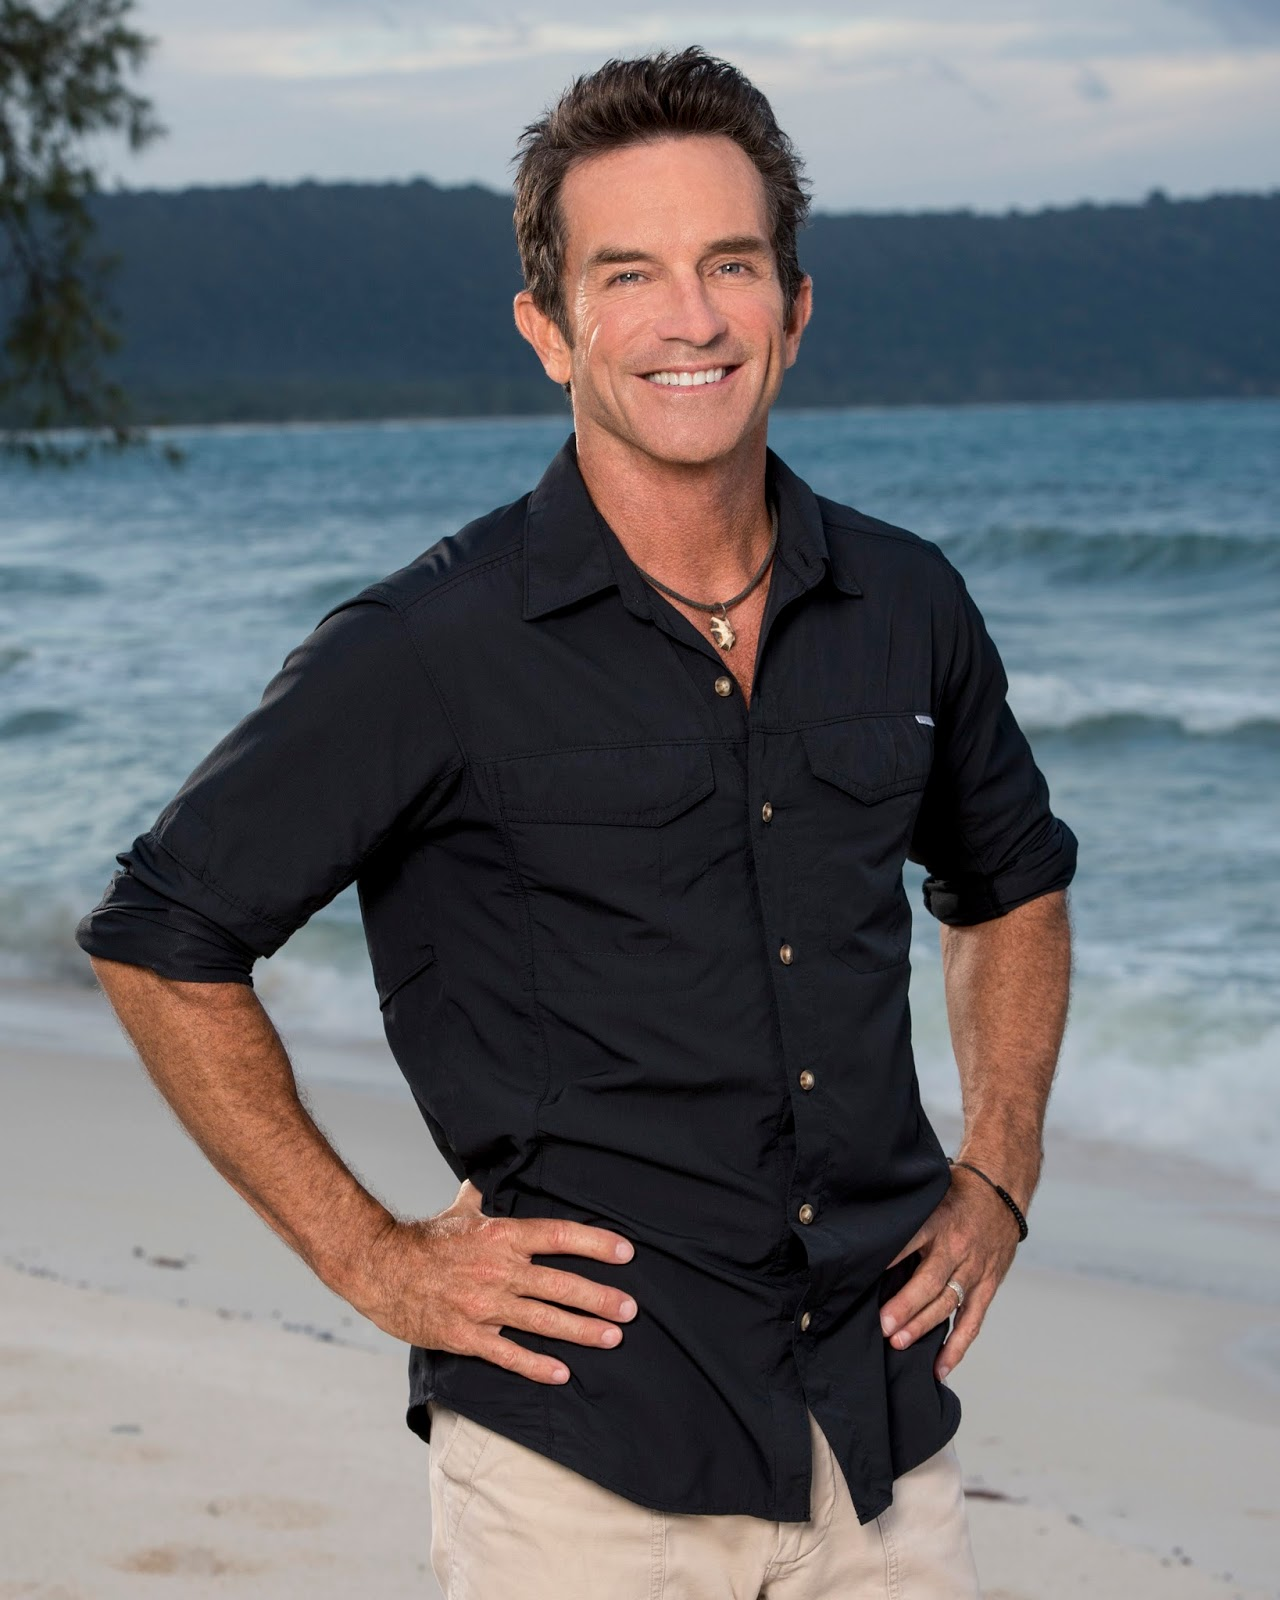 jeff probst married